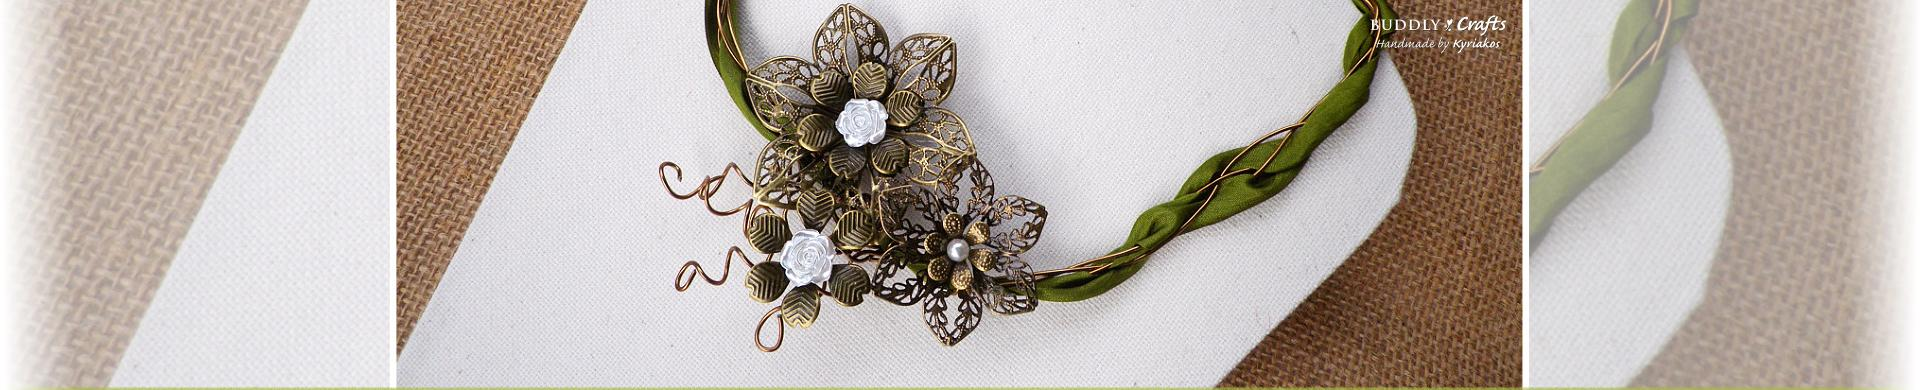 Metal Charms & Embellishments - Antique Bronze